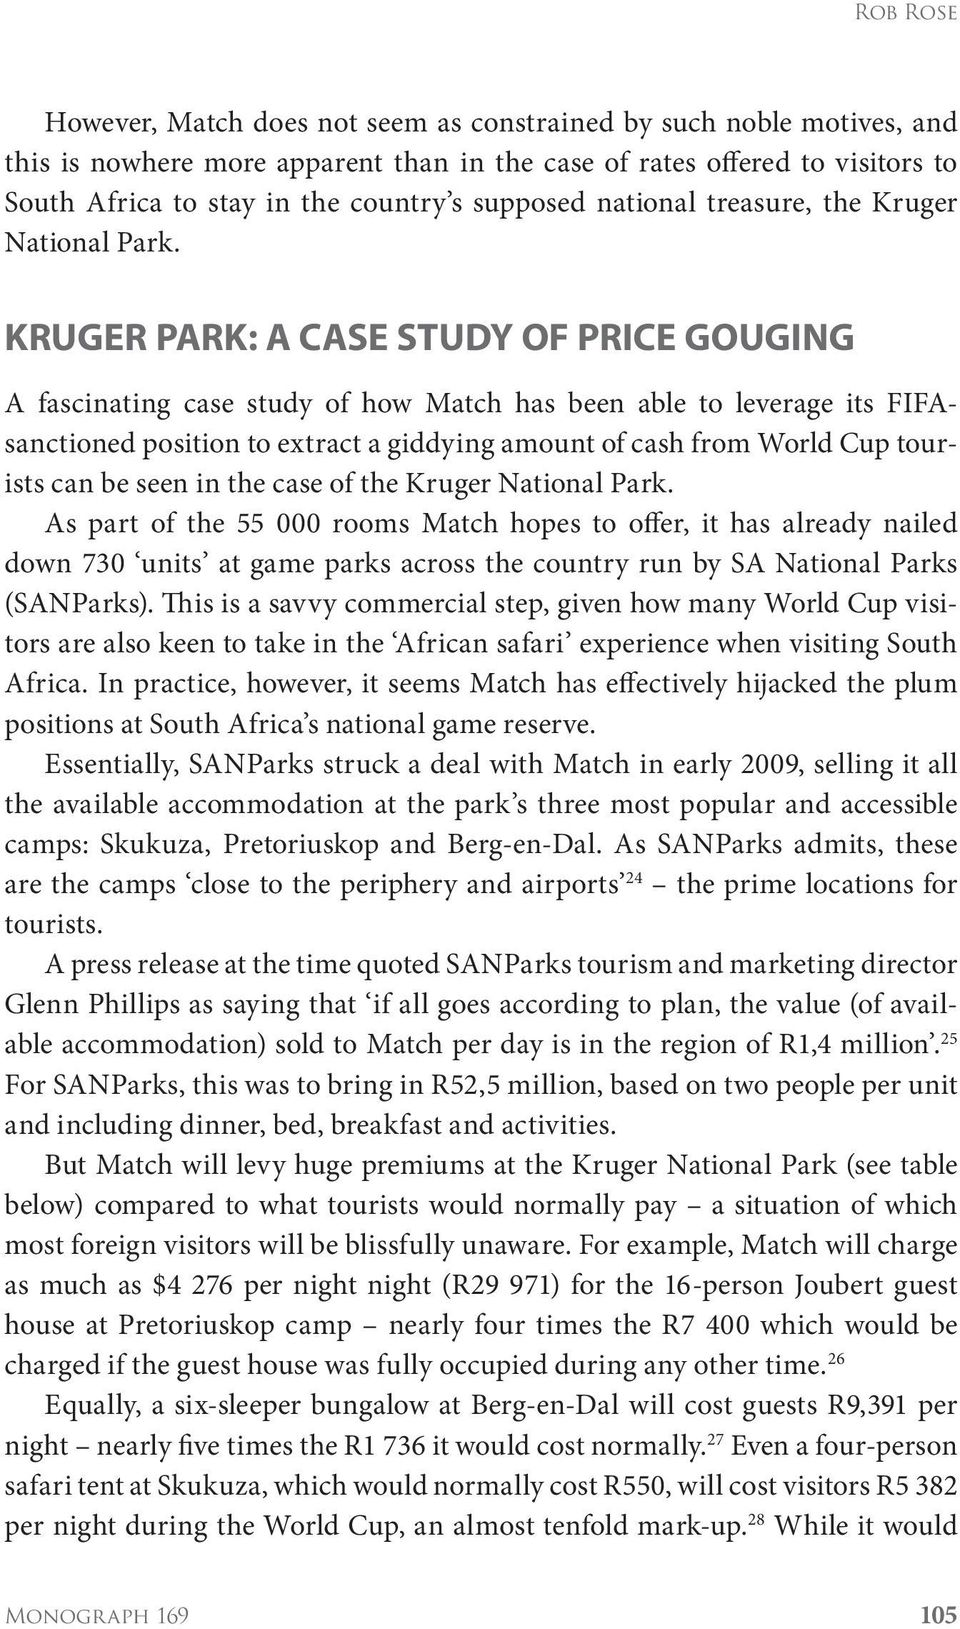 KRUGER PARK: A CASE STUDY OF PRICE GOUGING A fascinating case study of how Match has been able to leverage its FIFAsanctioned position to extract a giddying amount of cash from World Cup tourists can